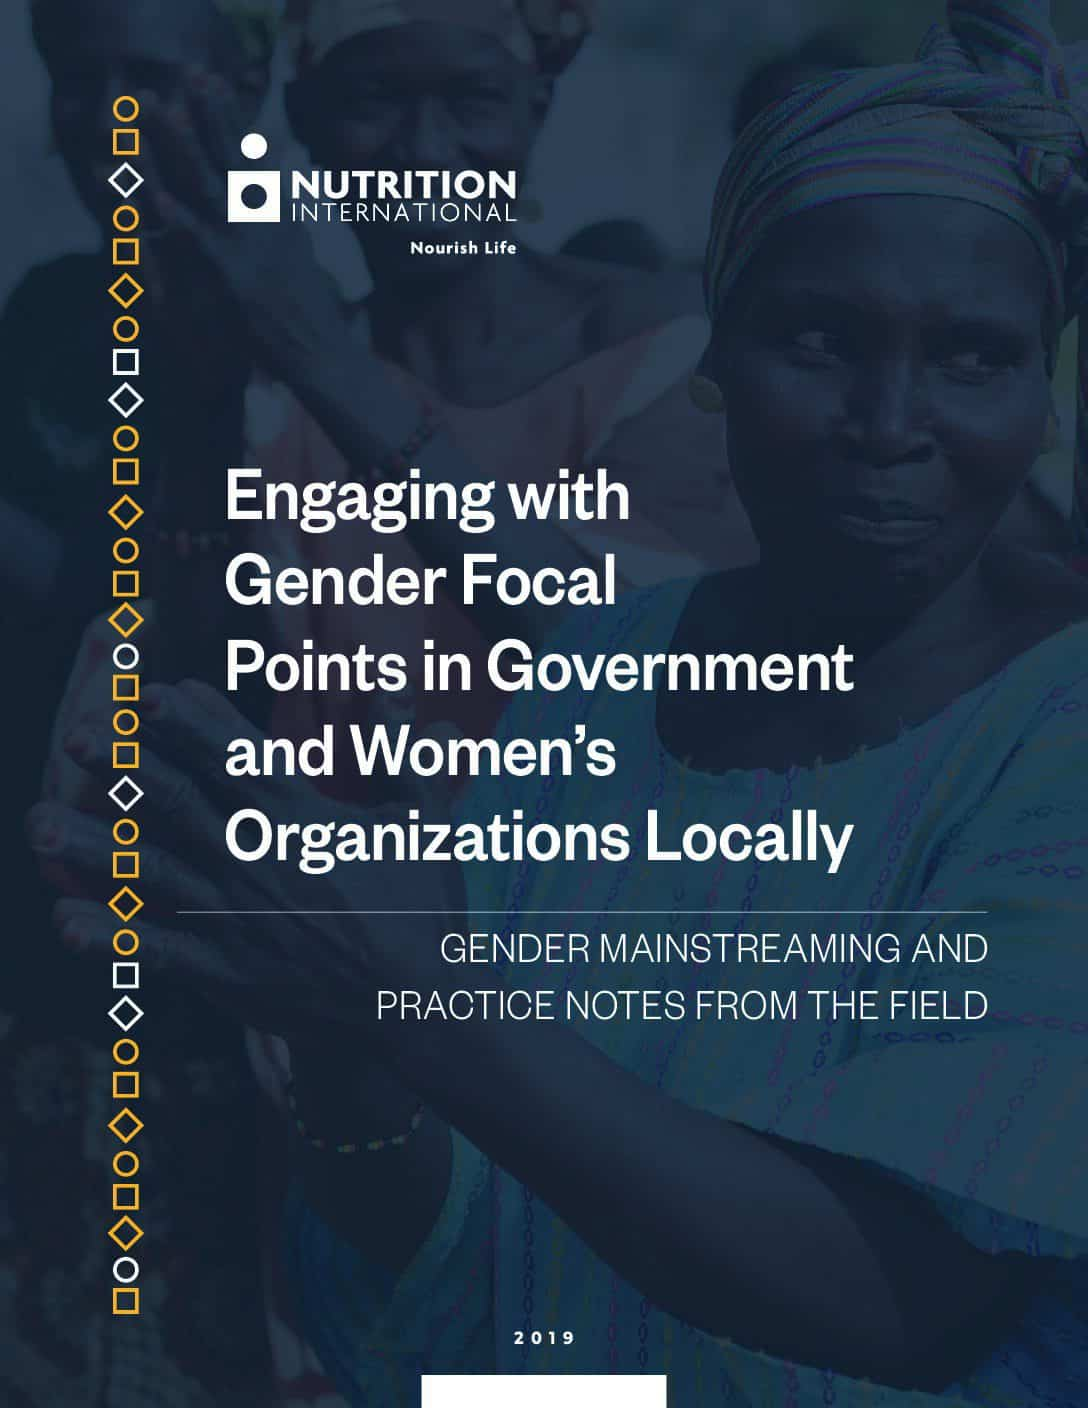 Engaging with Gender Focal Points in Government and Women's Organizations Locally thumbnail